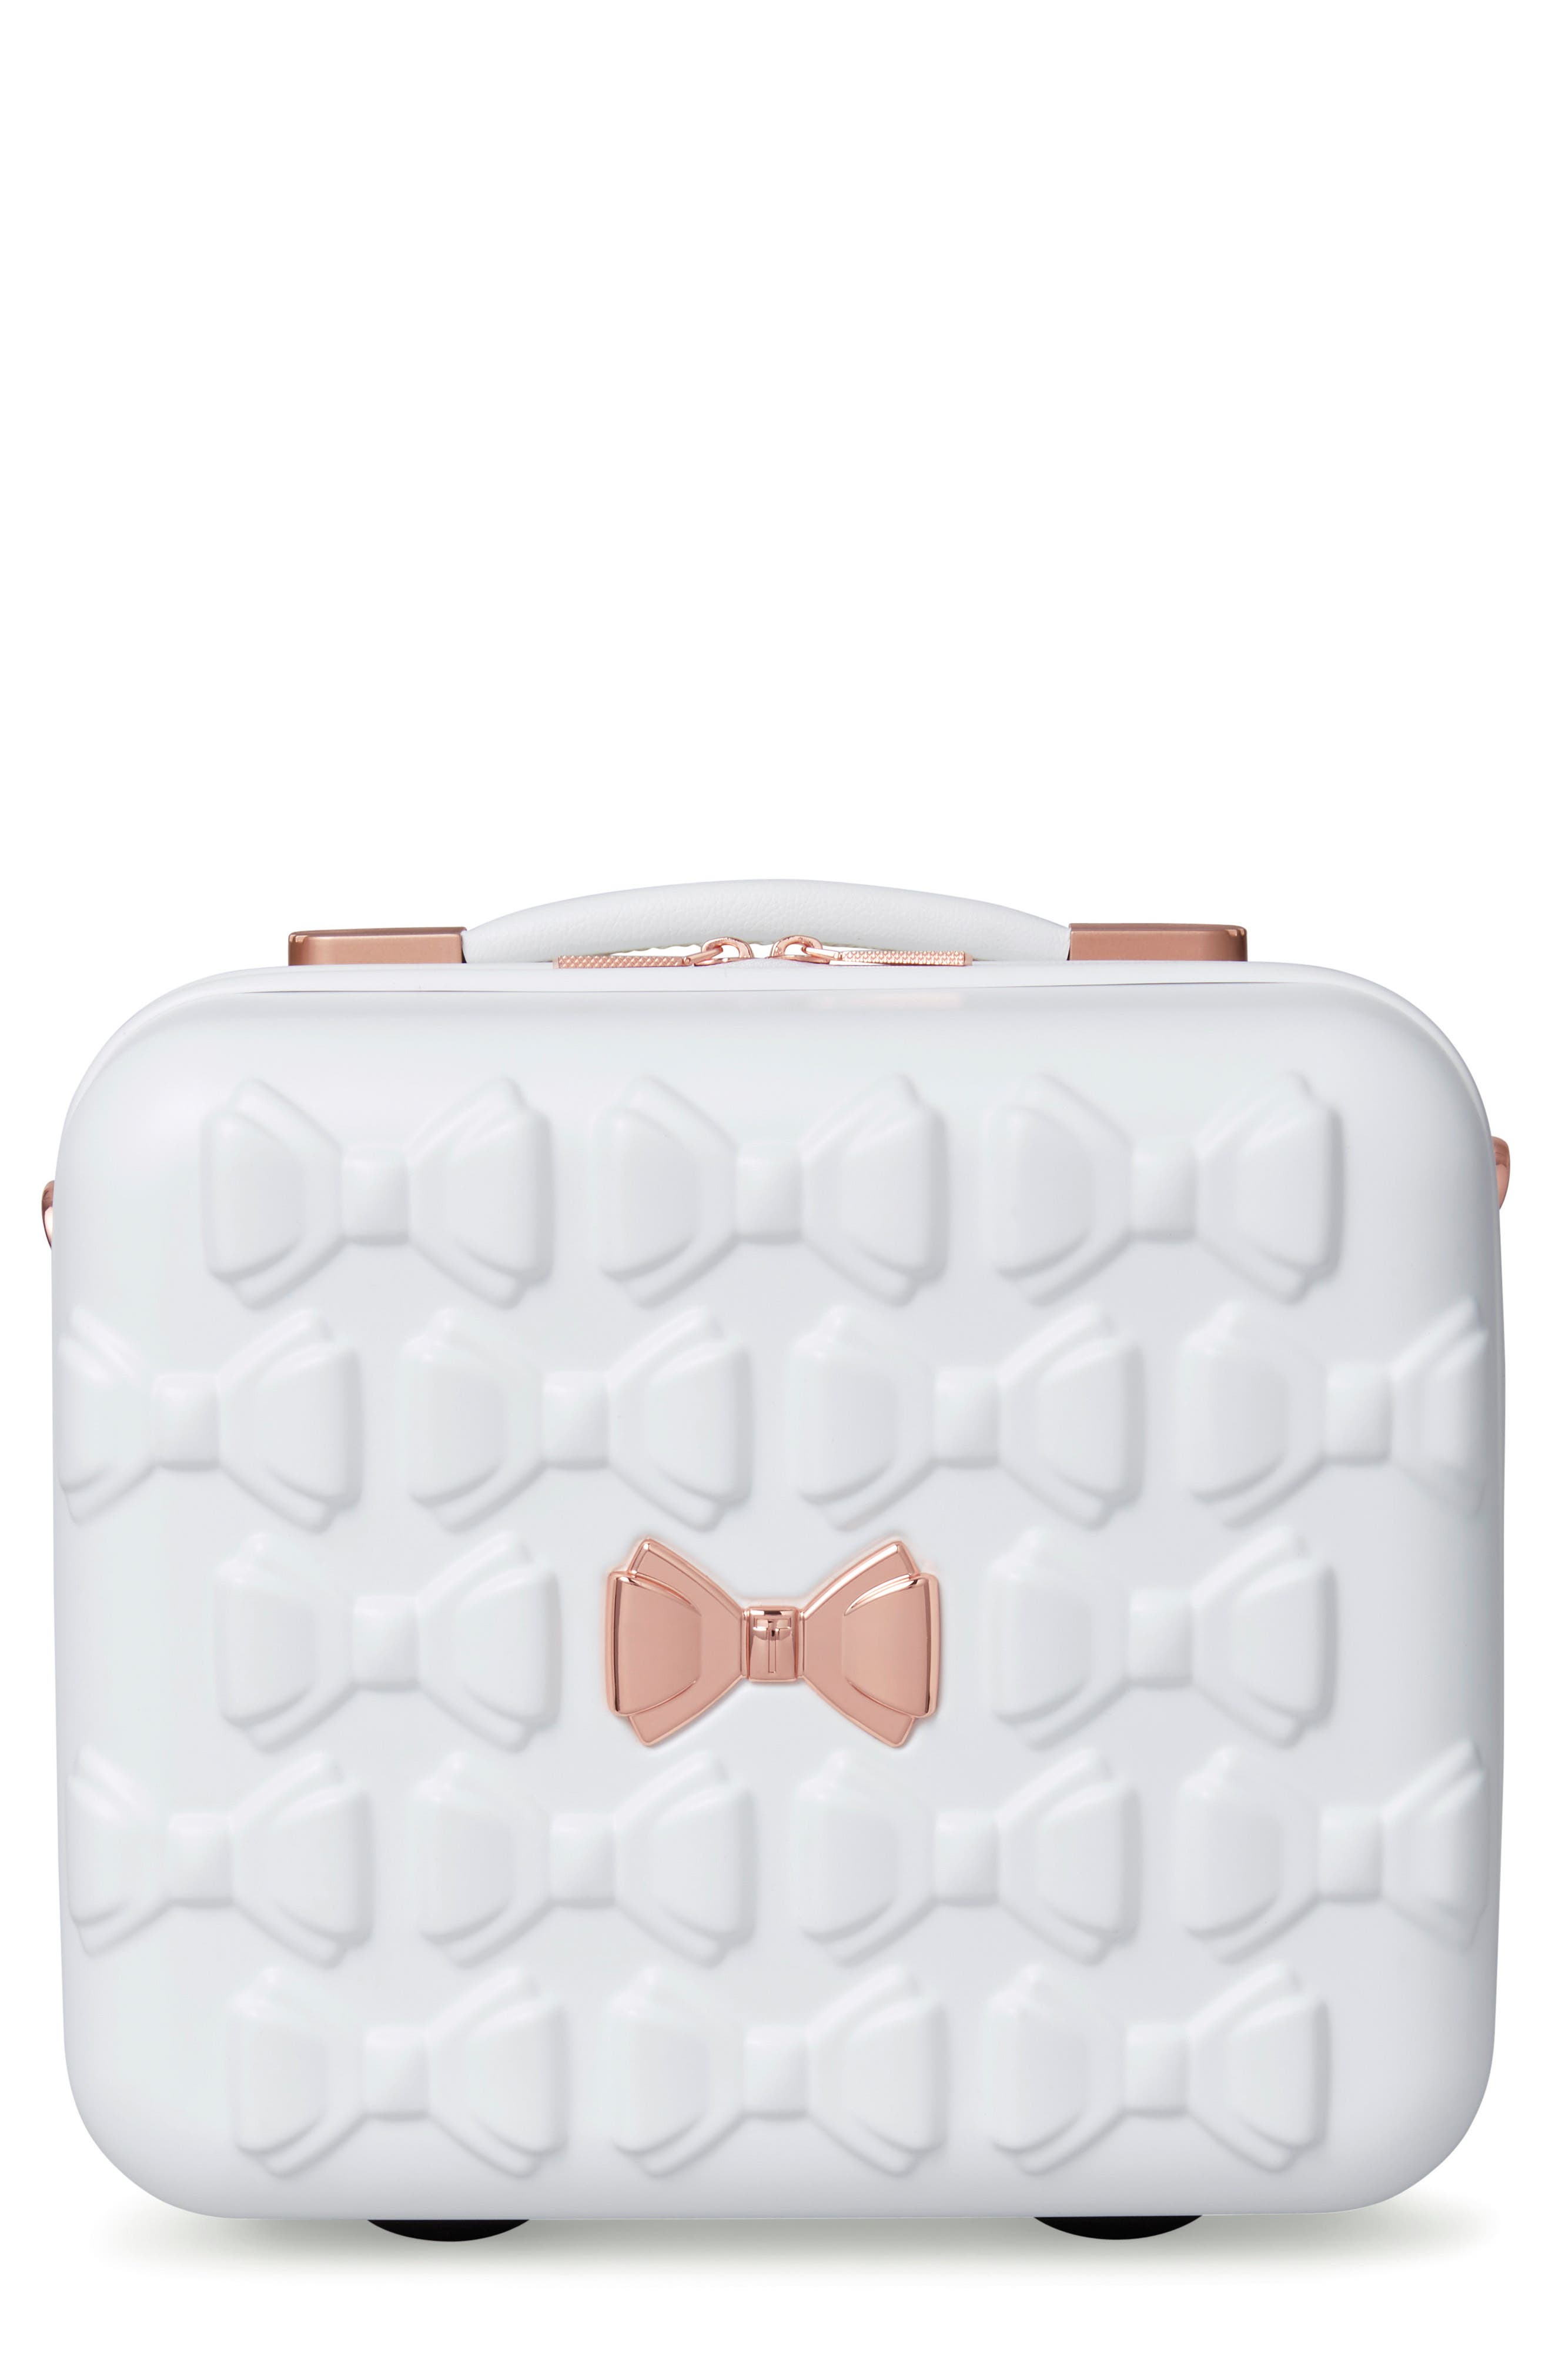 Beau Hardshell Vanity Case,                         Main,                         color, WHITE